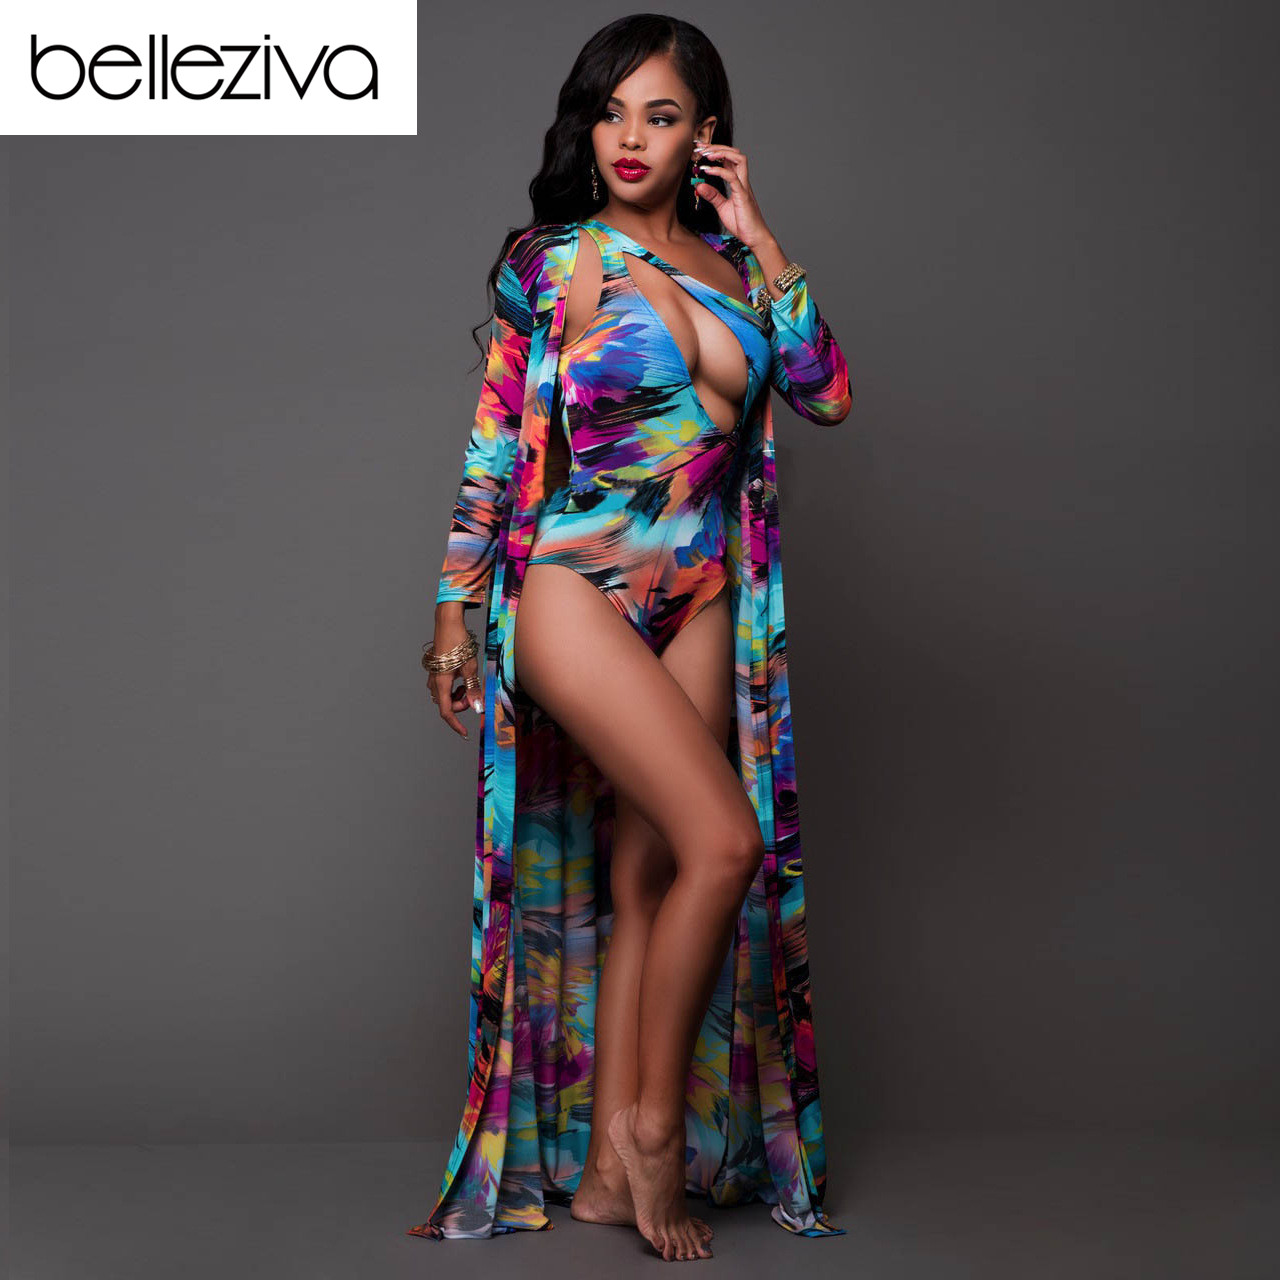 a2db6cac9ac Detail Feedback Questions about Belleziva New Summer Sexy Hot Colorful  Print One Piece Swimwear Beach Cover Up Swimsuit Set Brazilian Bathing Suit  Monokini ...